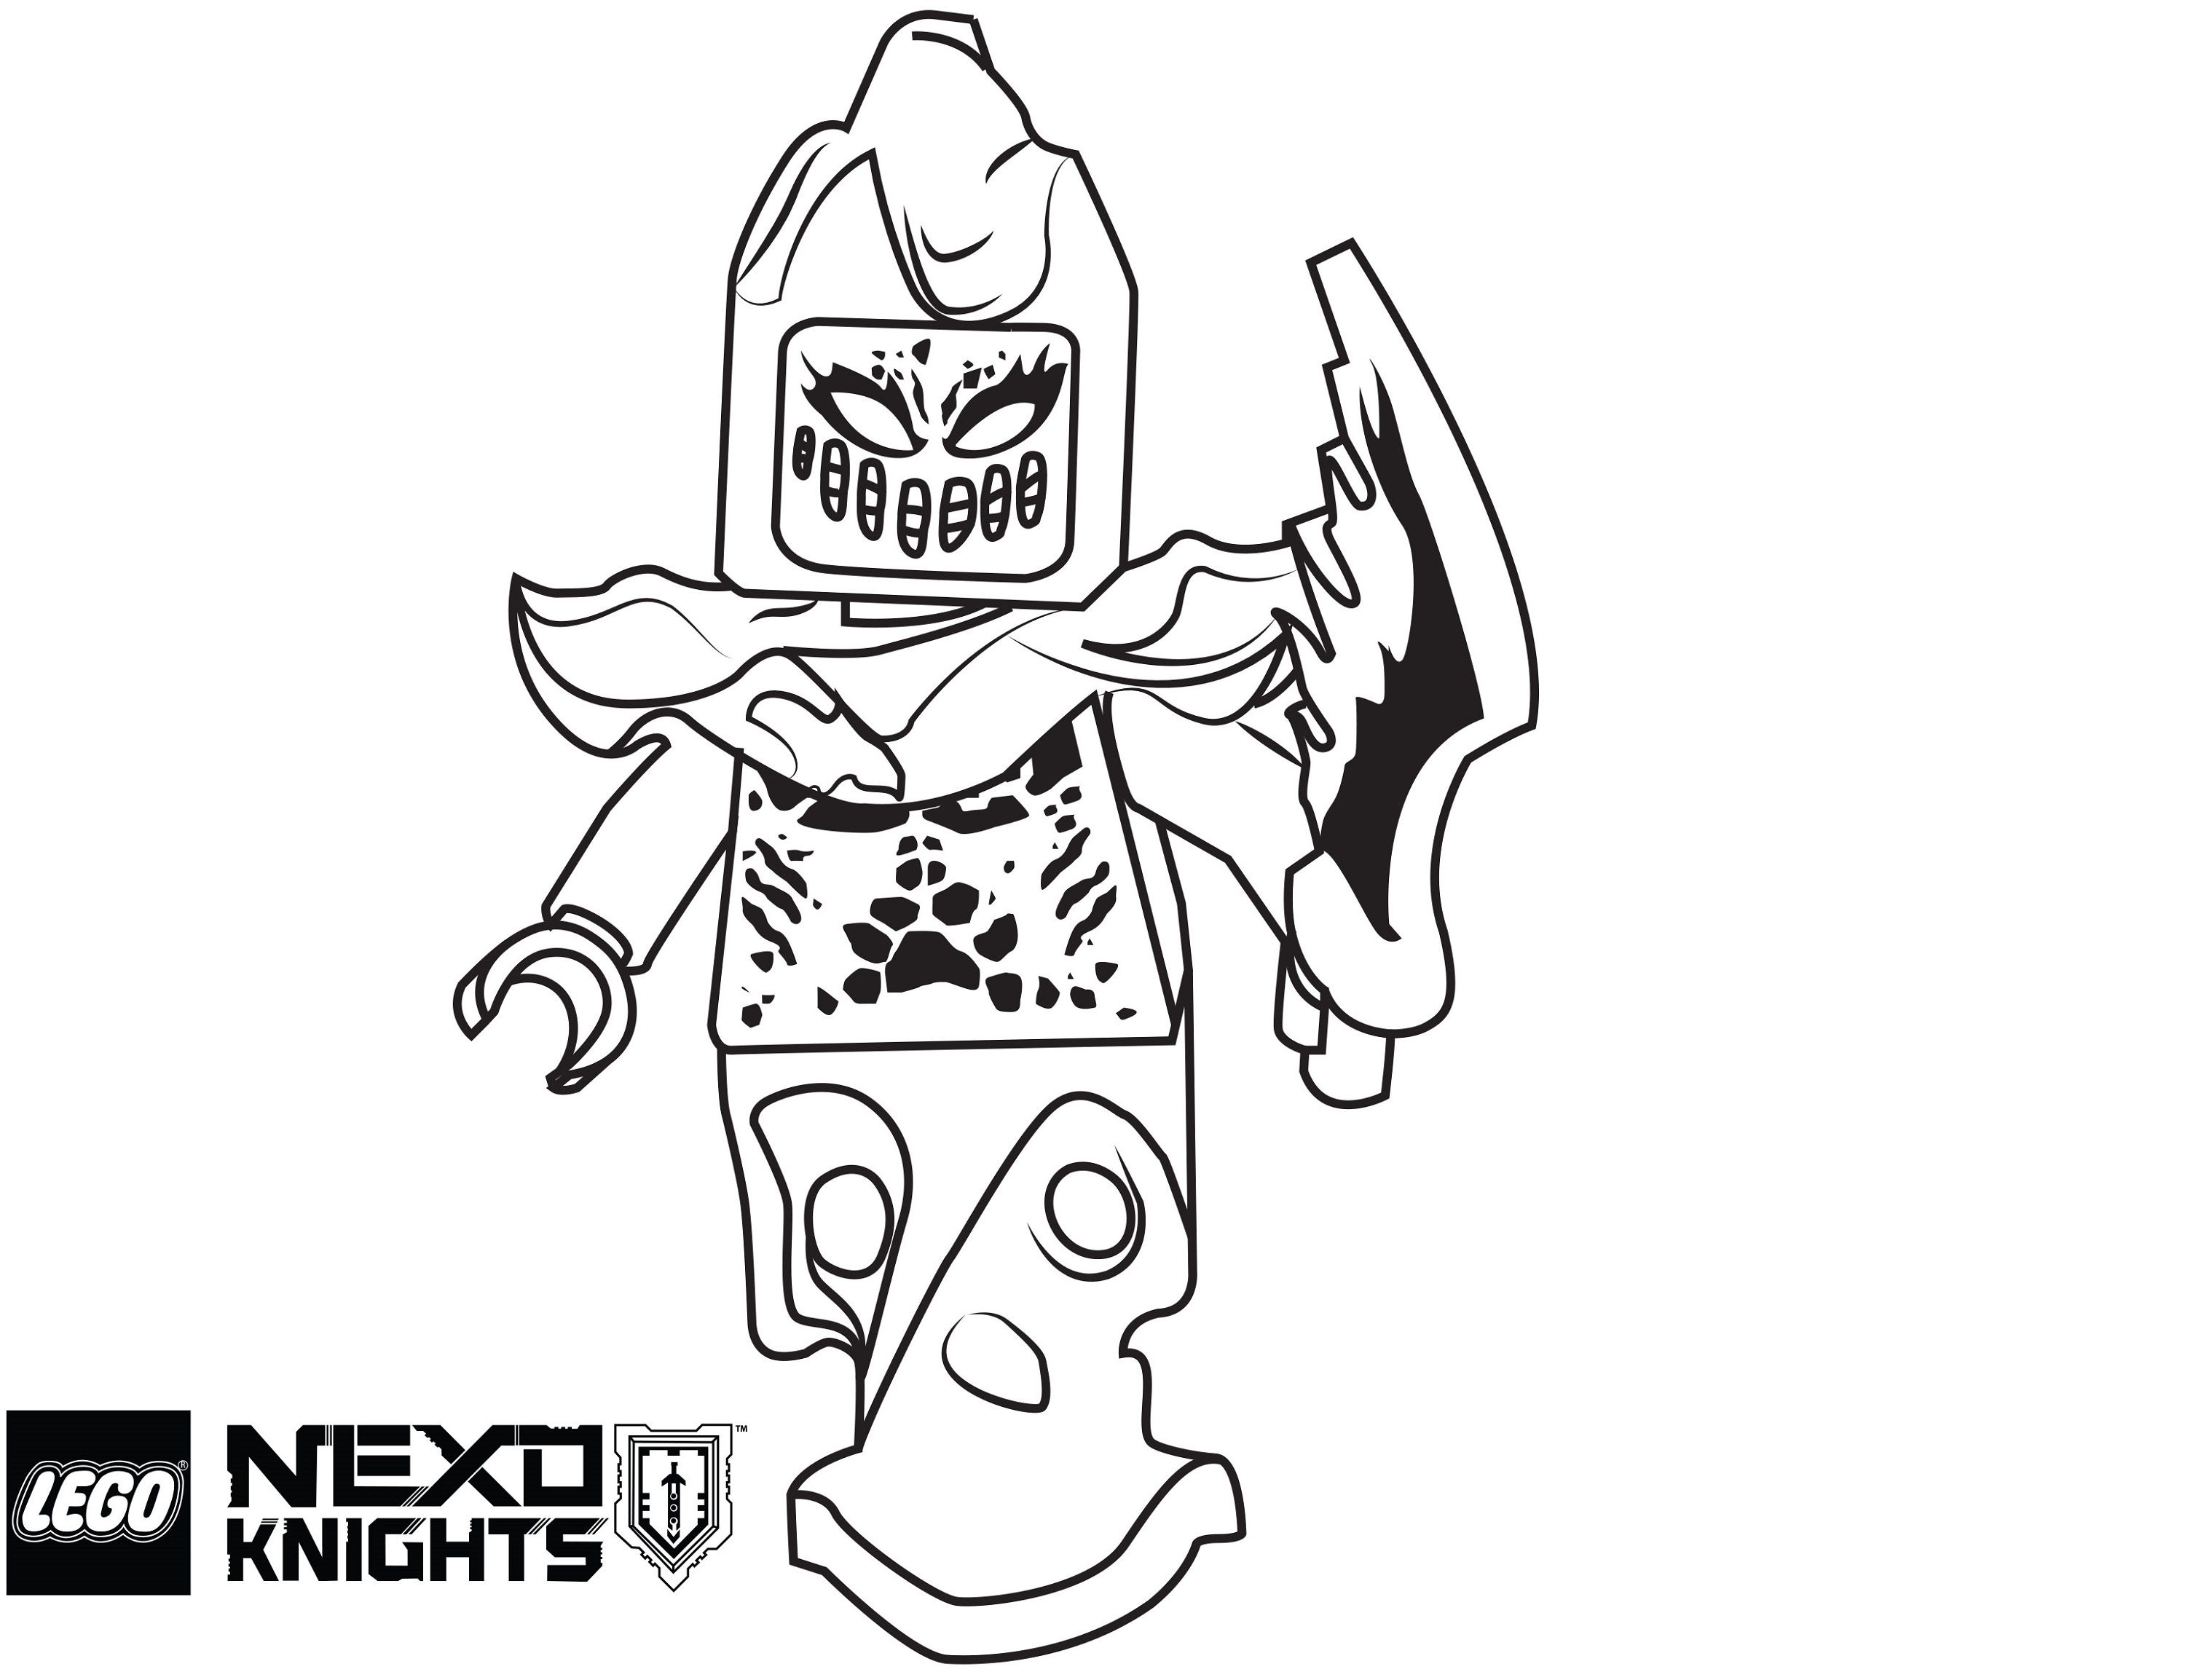 Lego Nexo Knights Coloring Pages Aaron Lego Coloring Pages Coloring Pages Inspirational Coloring Pages